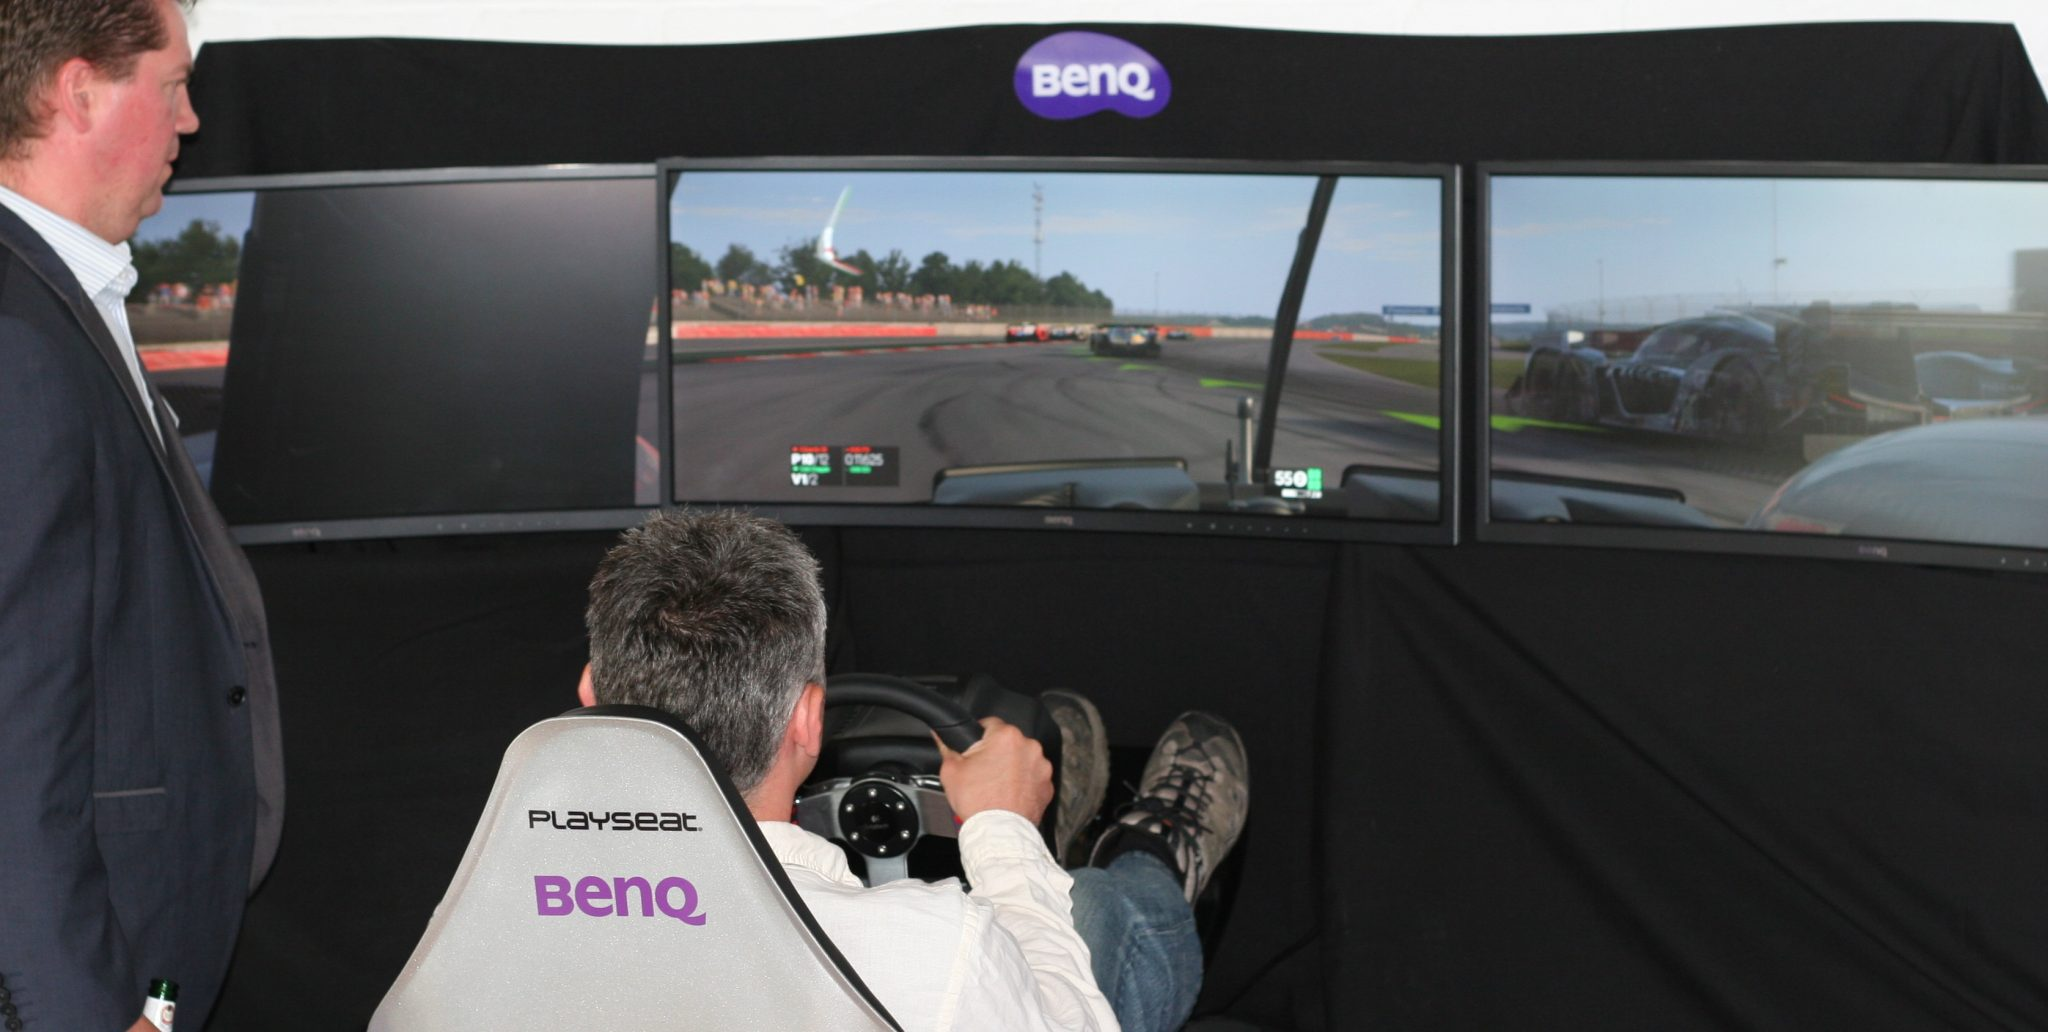 BENQ XR3501 Curved LCD Gaming Monitor